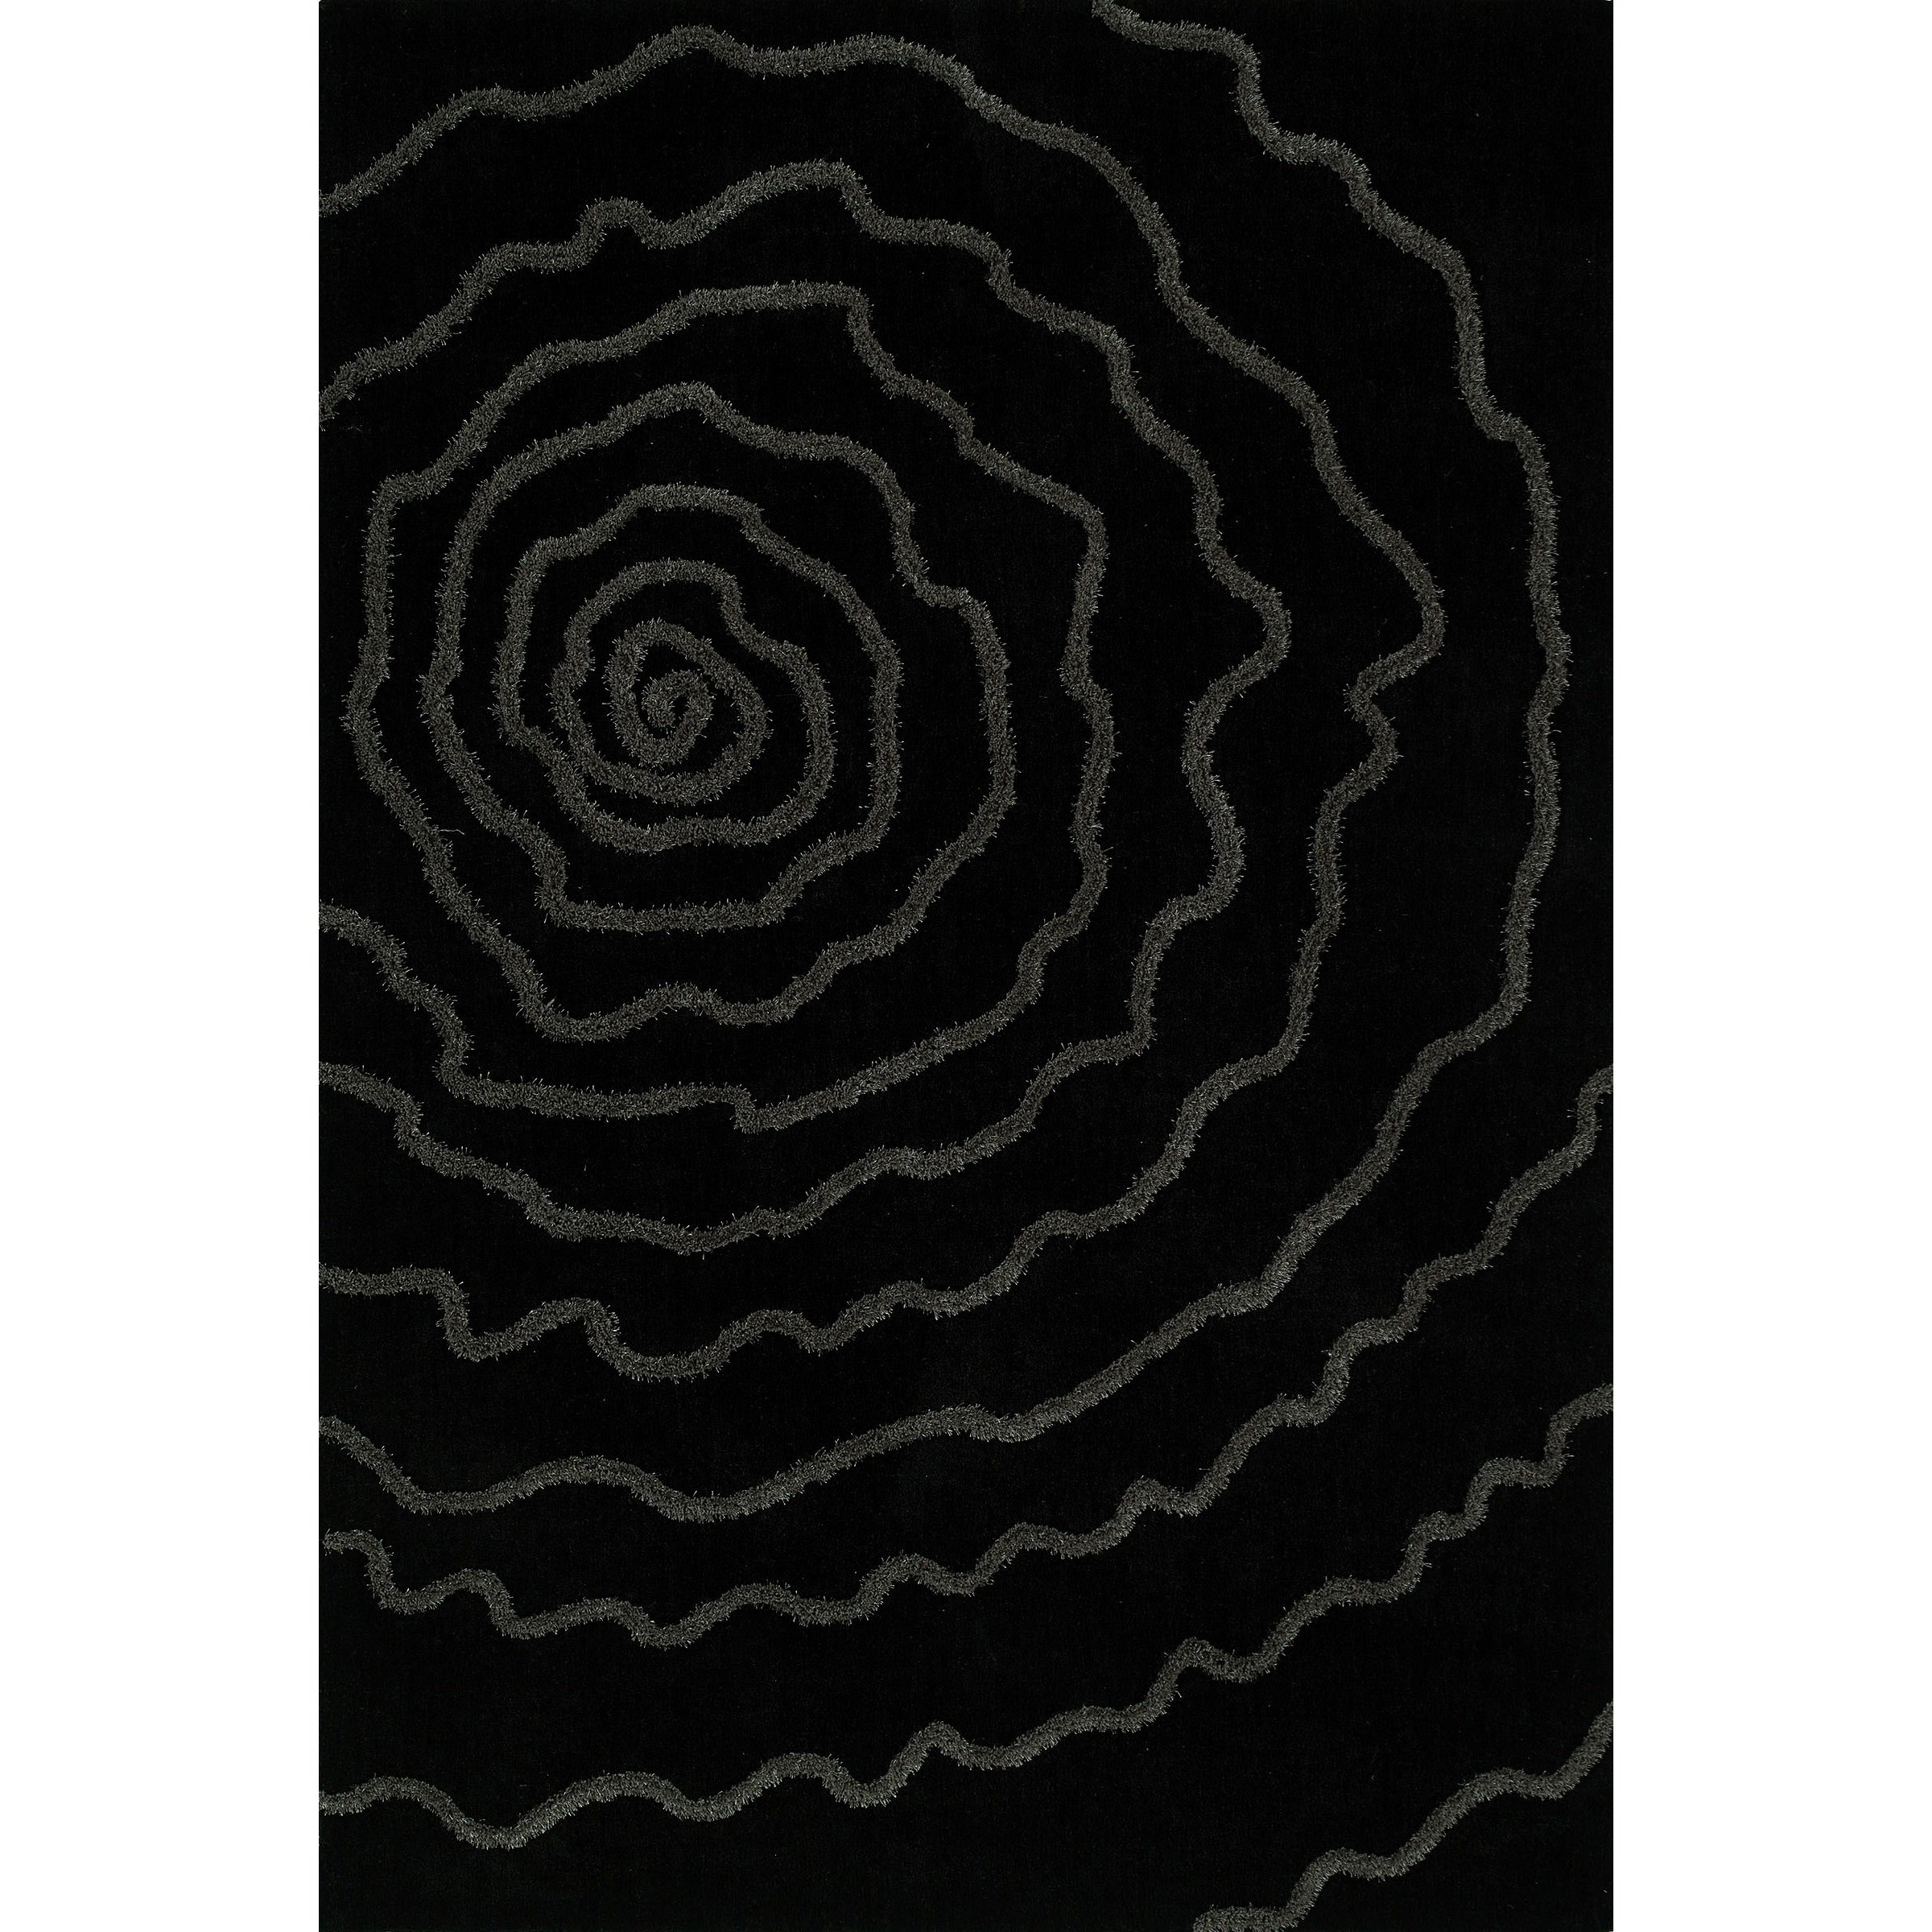 Dakota Black 8'X10' Area Rug by Dalyn at Sadler's Home Furnishings